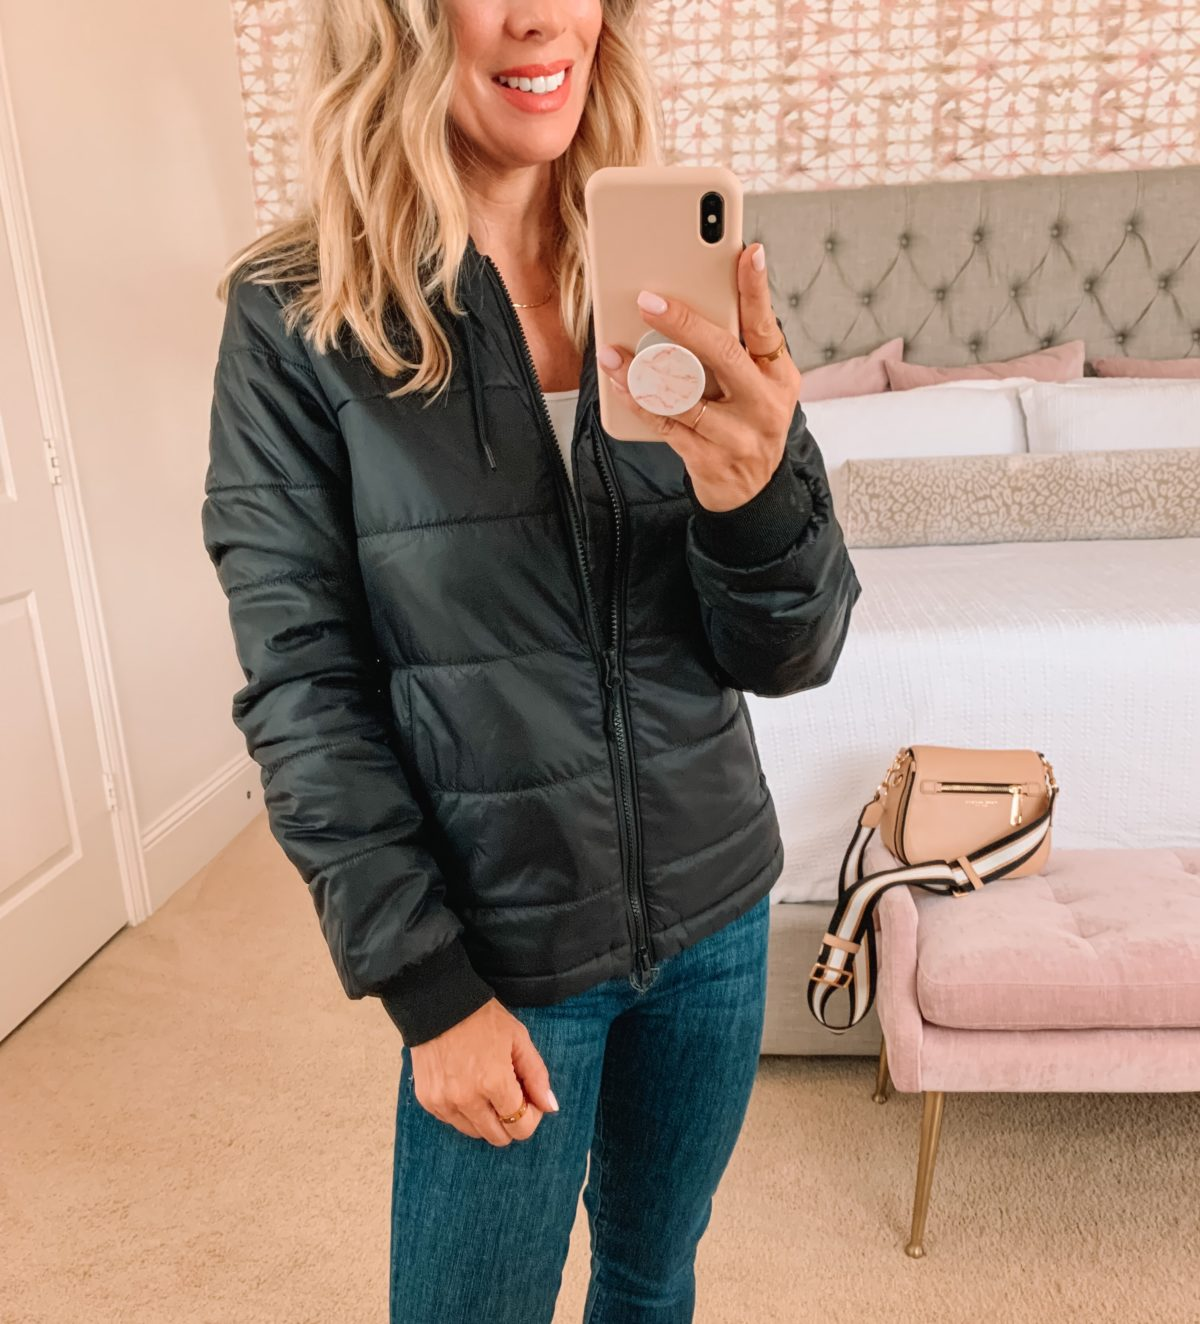 Nordstrom Anniversary Sale, Puffer Jacket, Jeans, Boots, Crossbody